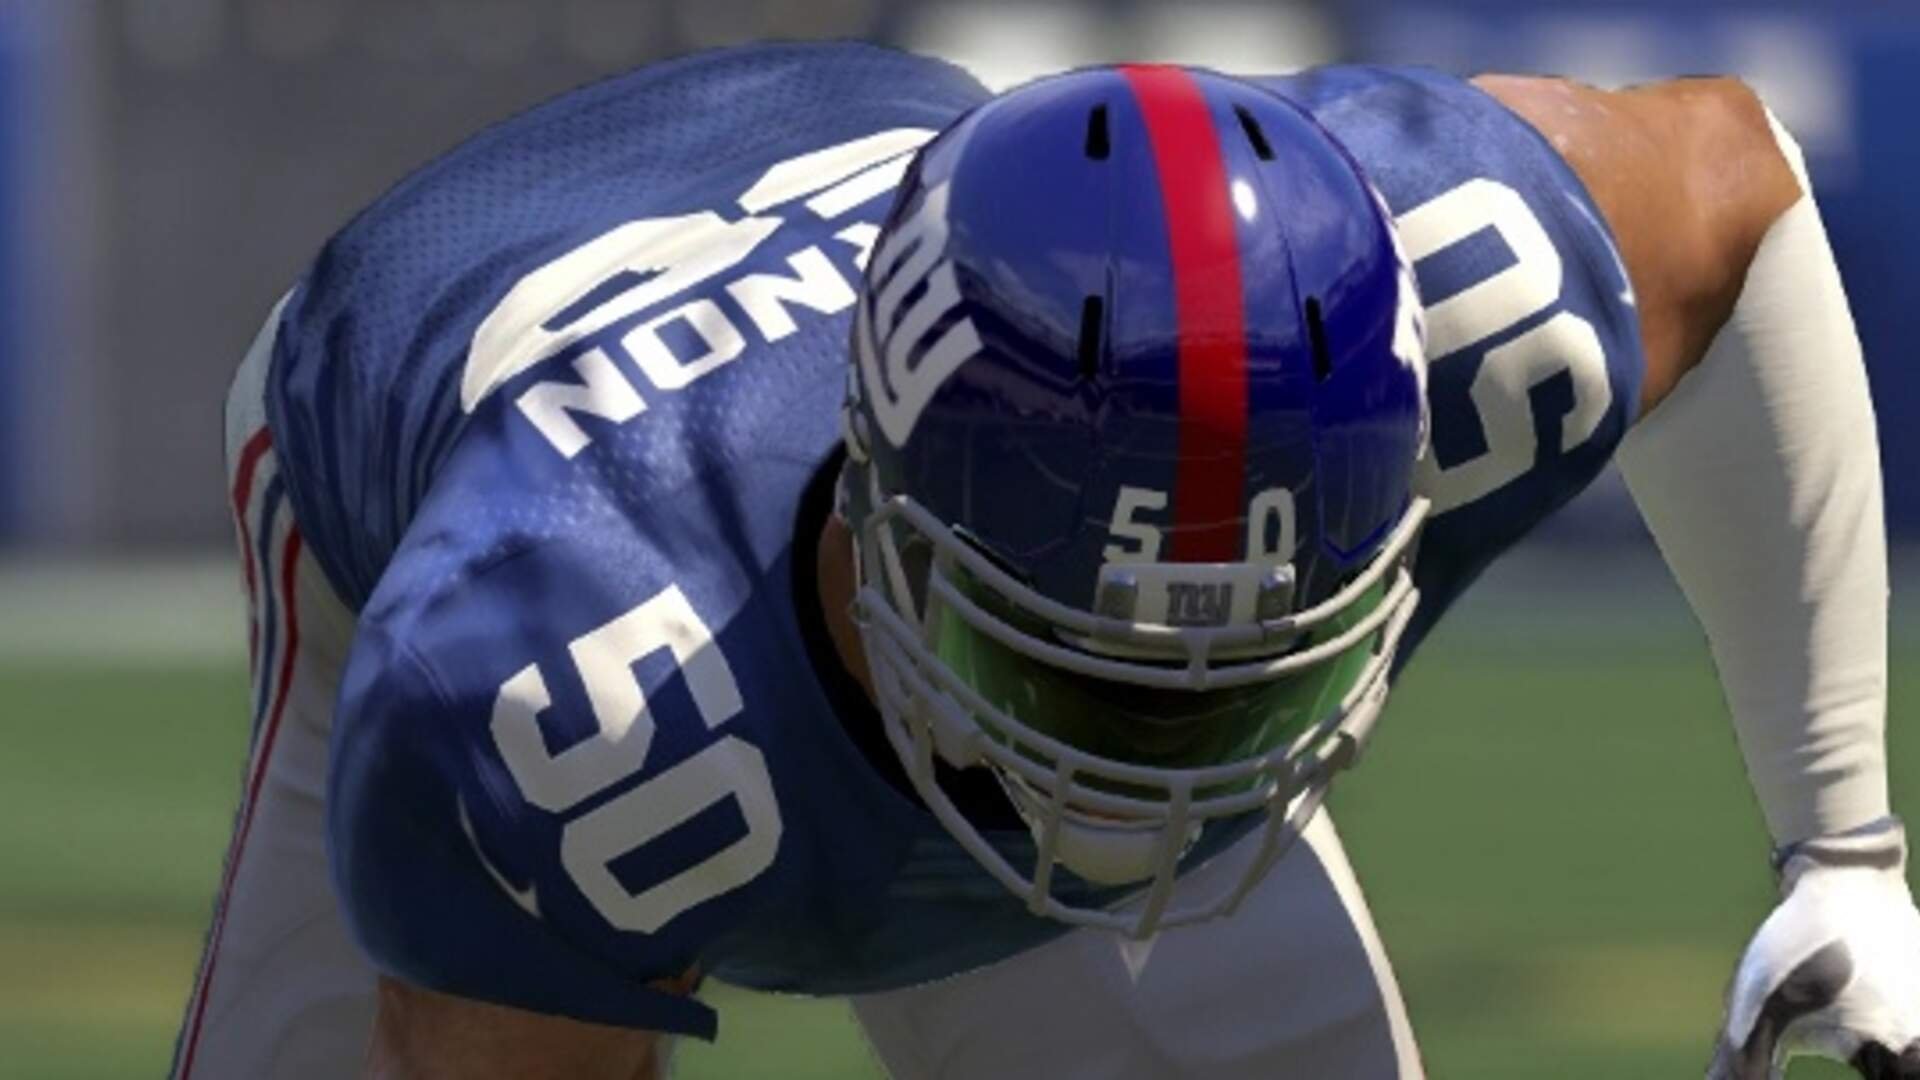 Madden 18 Tips Guide - Offensive and Defensive Money Plays, MUT Budget Studs, Earn MUT Coins Fast, Madden 18 Controls Guide